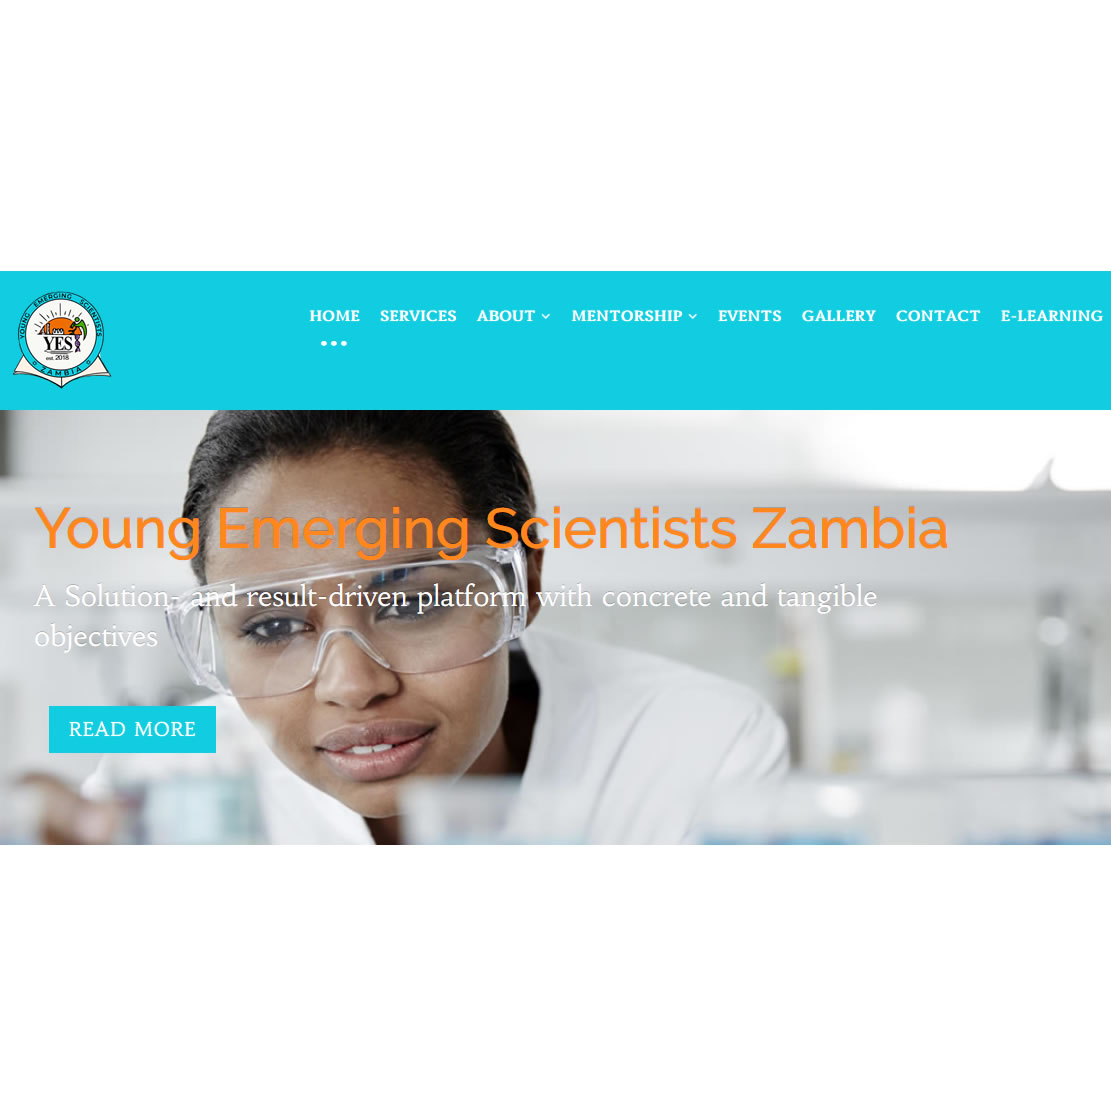 Website design for Young Emerging Scientists Zambia, Lusaka, Zambia